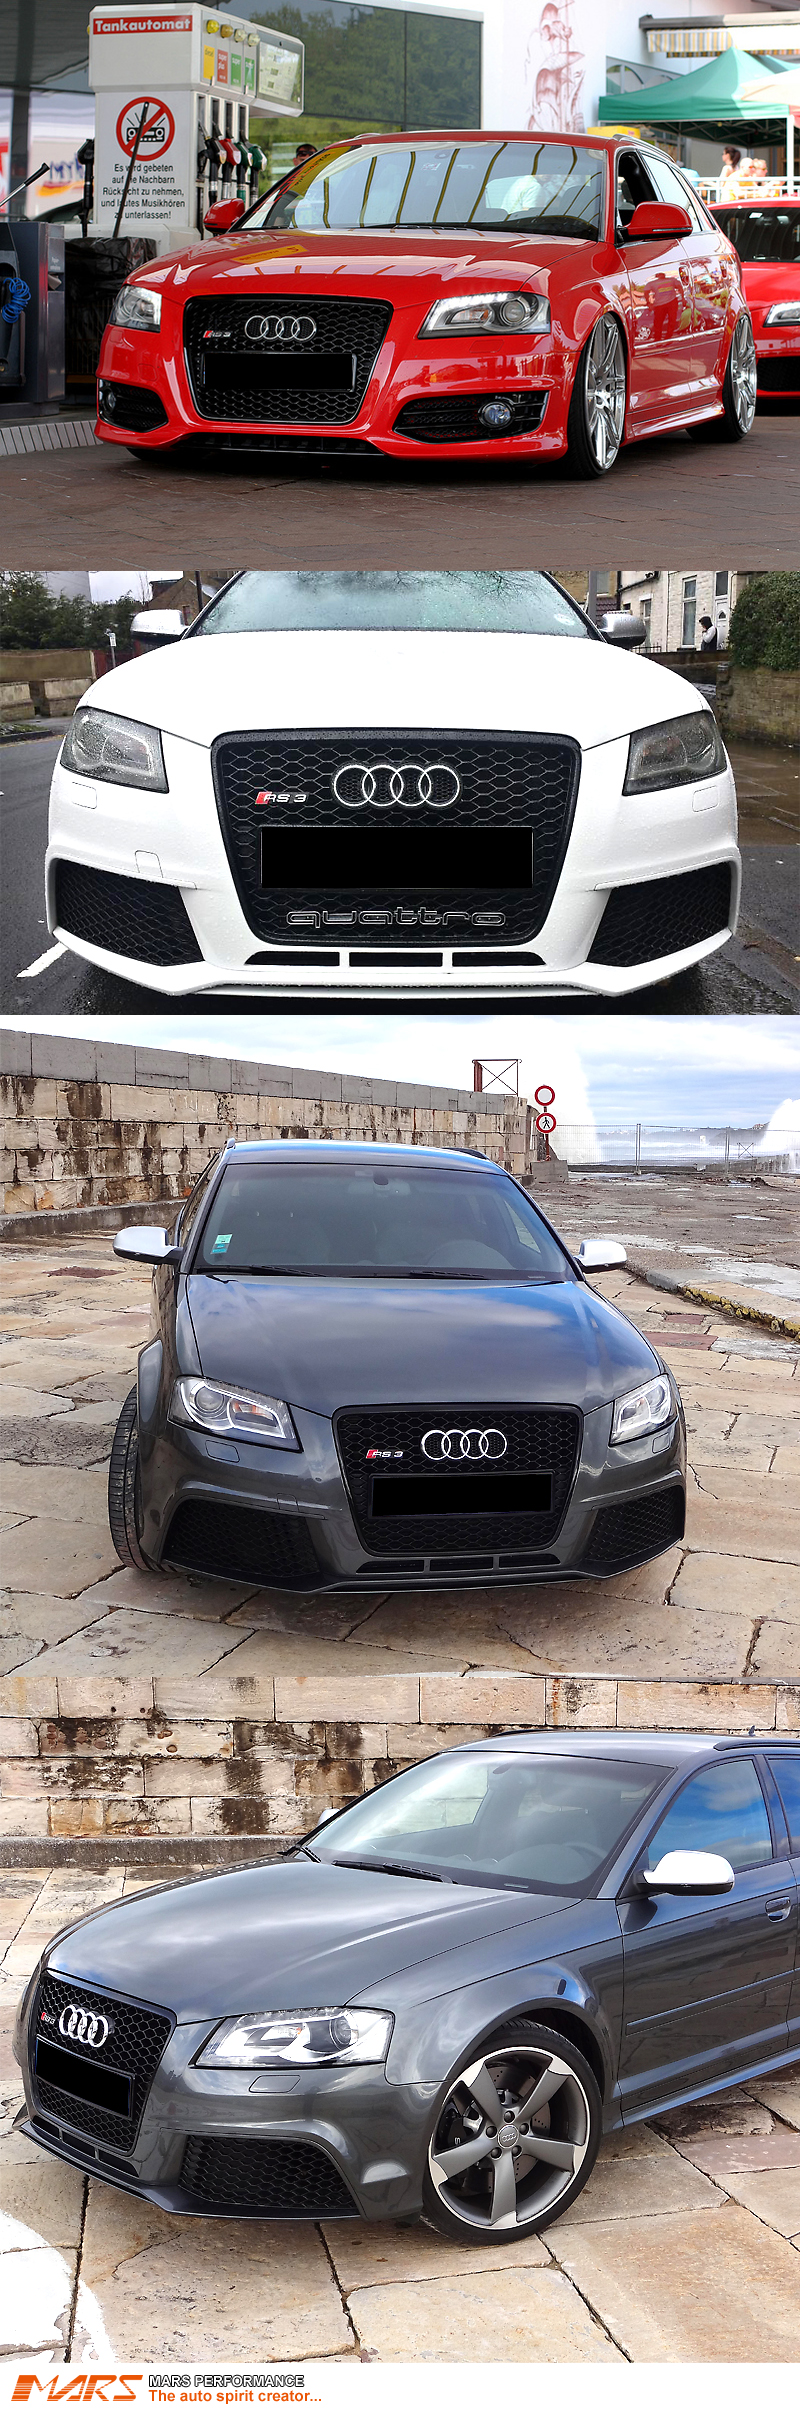 gloss black honeycomb rs3 style front bumper grille grill for audi a3 8p 09 12 ebay. Black Bedroom Furniture Sets. Home Design Ideas